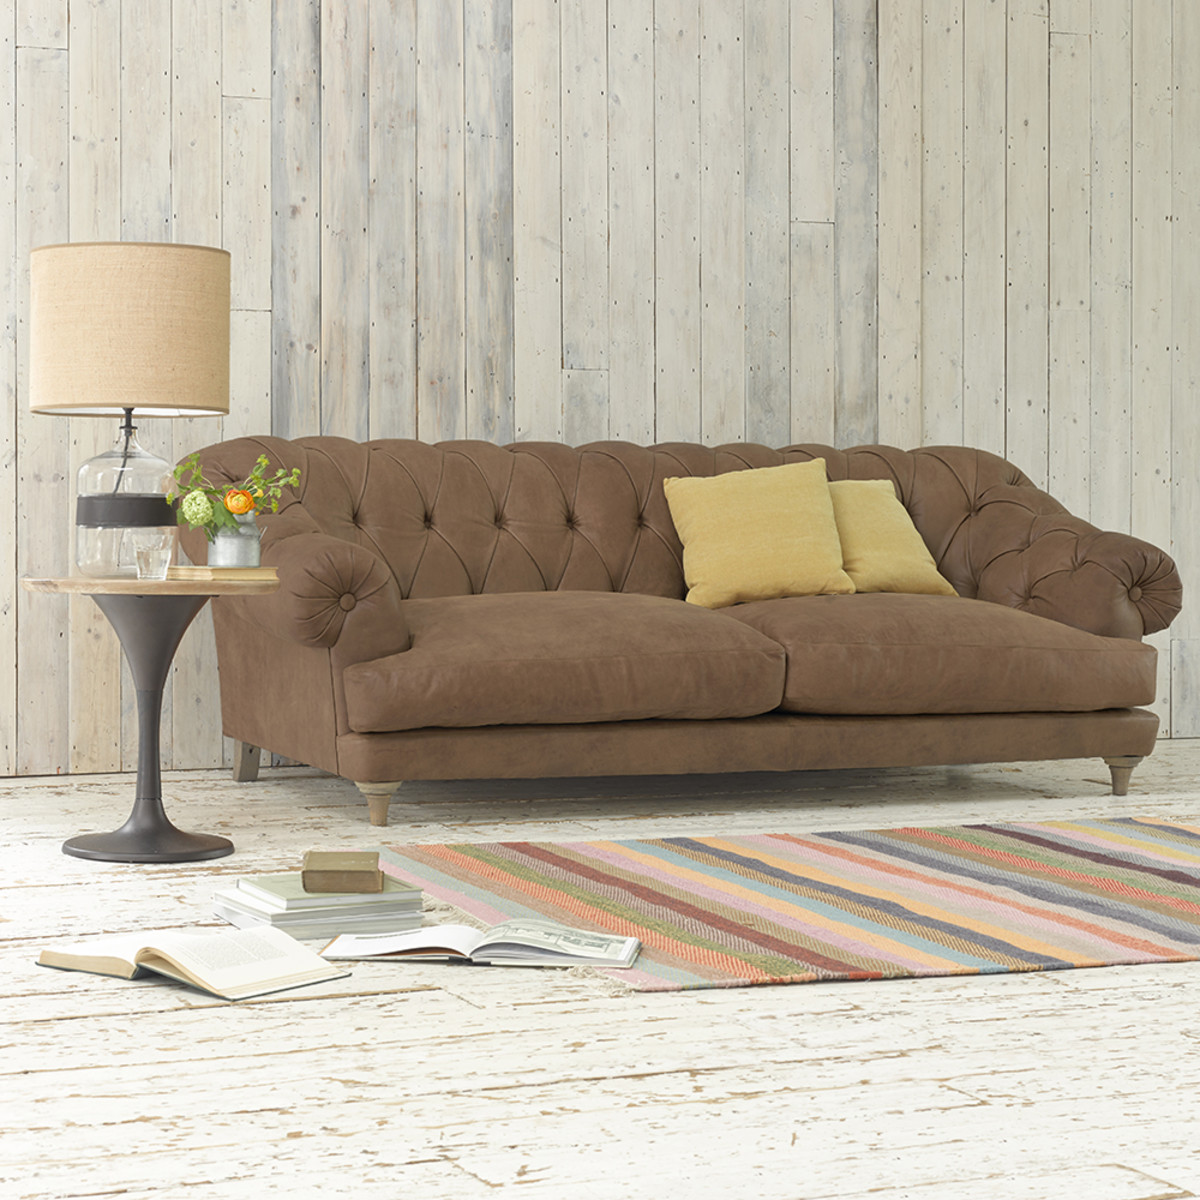 Loaf - Bagsie leather sofa from £2495 low-res